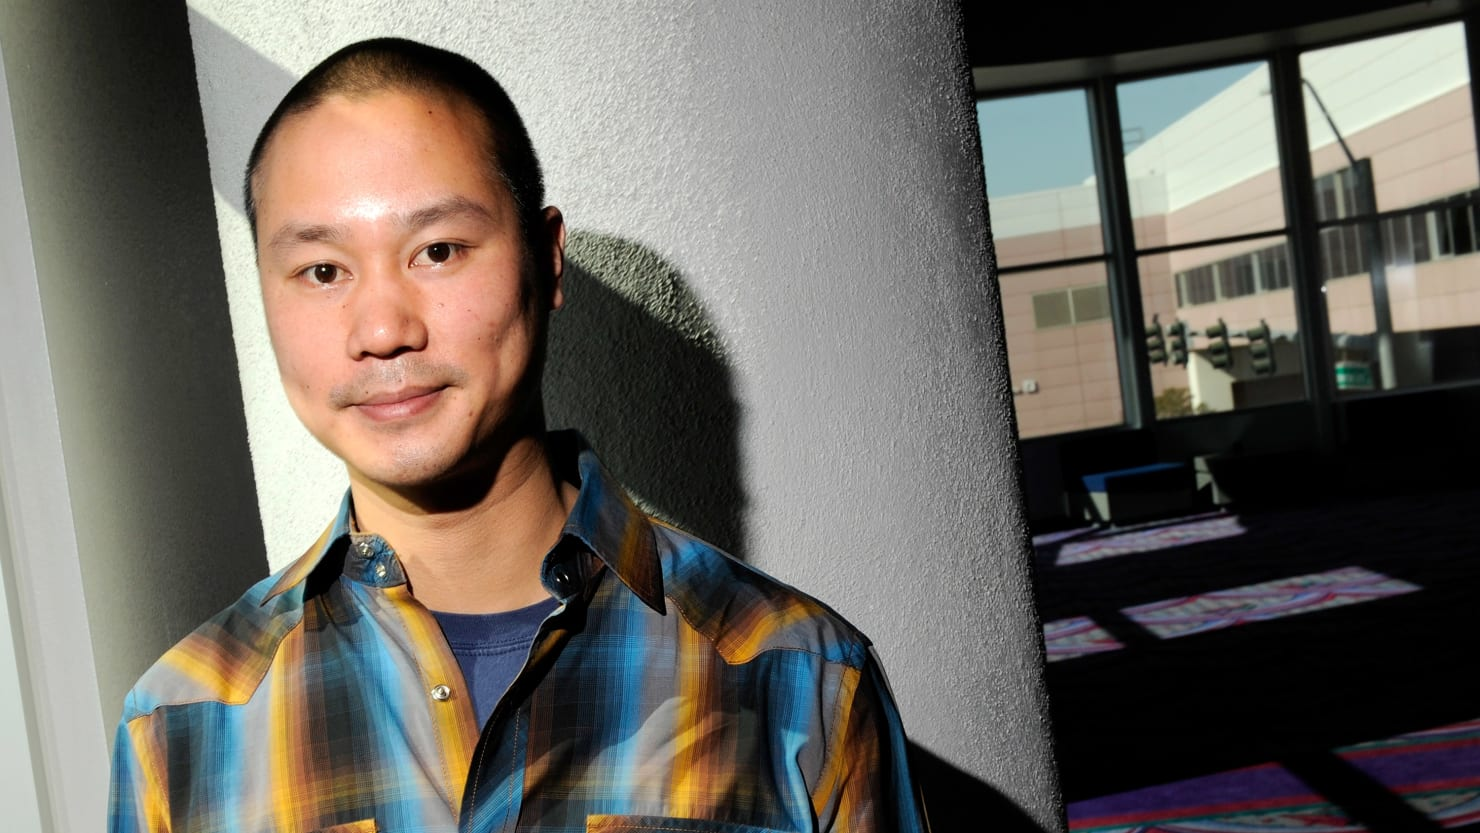 Jewel Warned Zappos Visionary About His Drug Use Months Before He Died